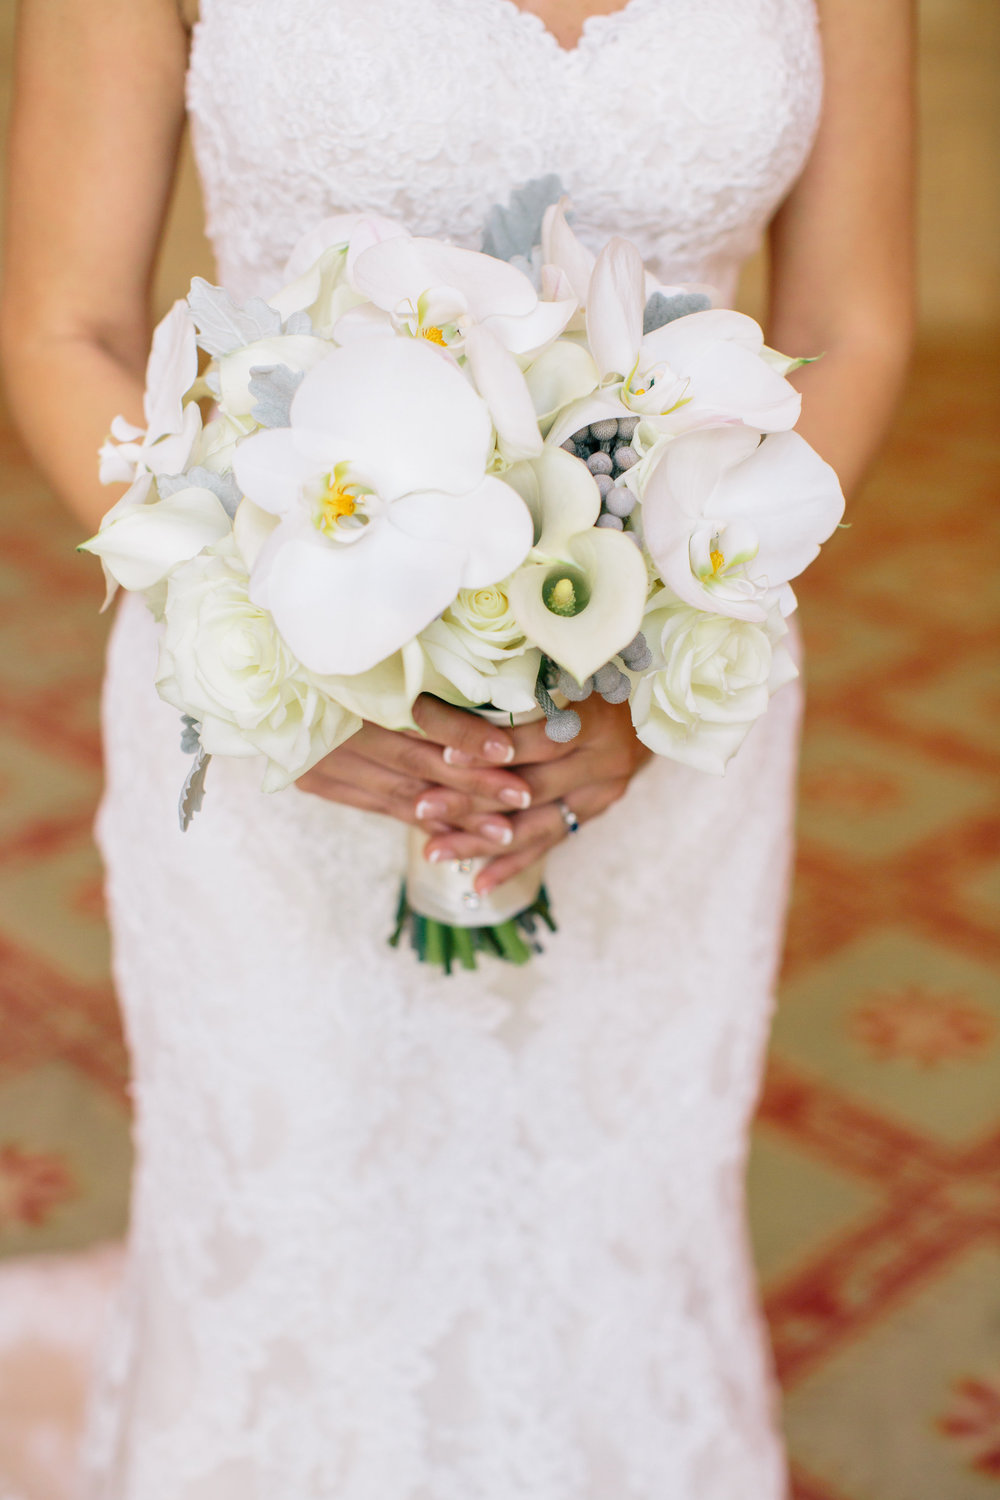 B Floral DC boquet with orchids and calla lilies